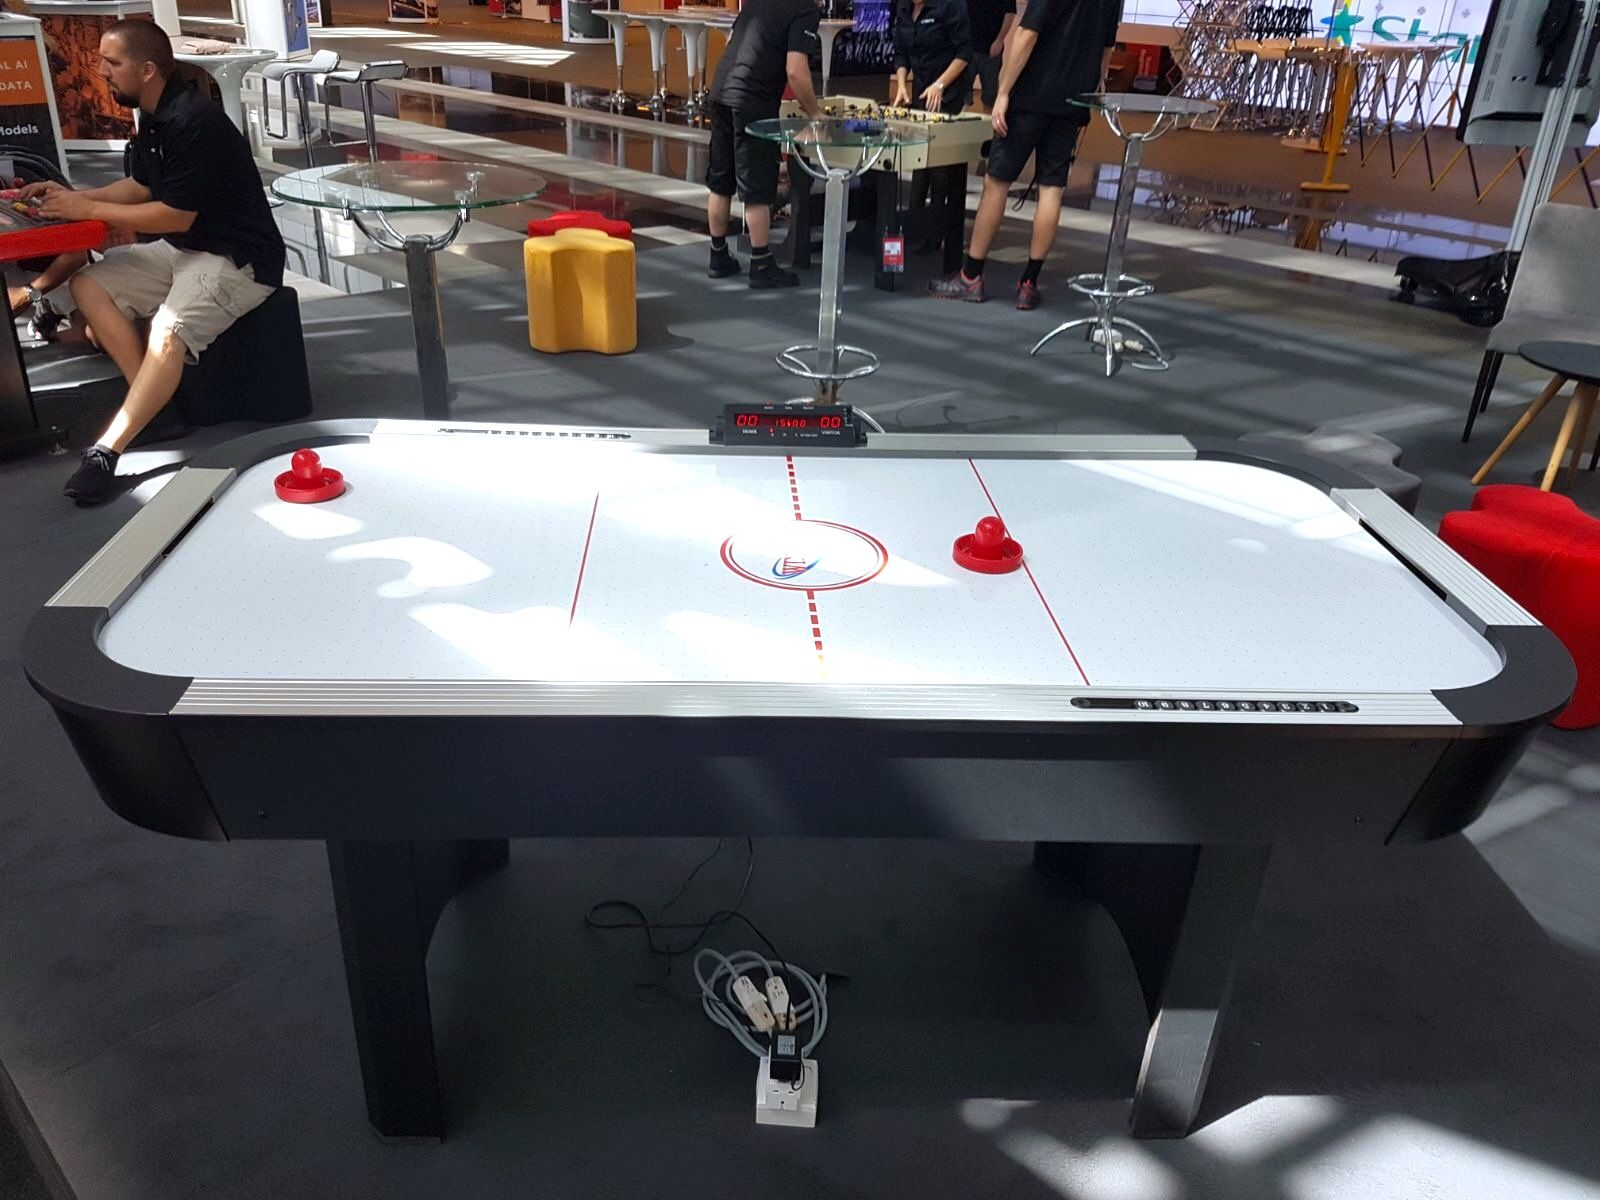 Singapore Air Hockey Table Rental Air Hockey Table Air Hockey